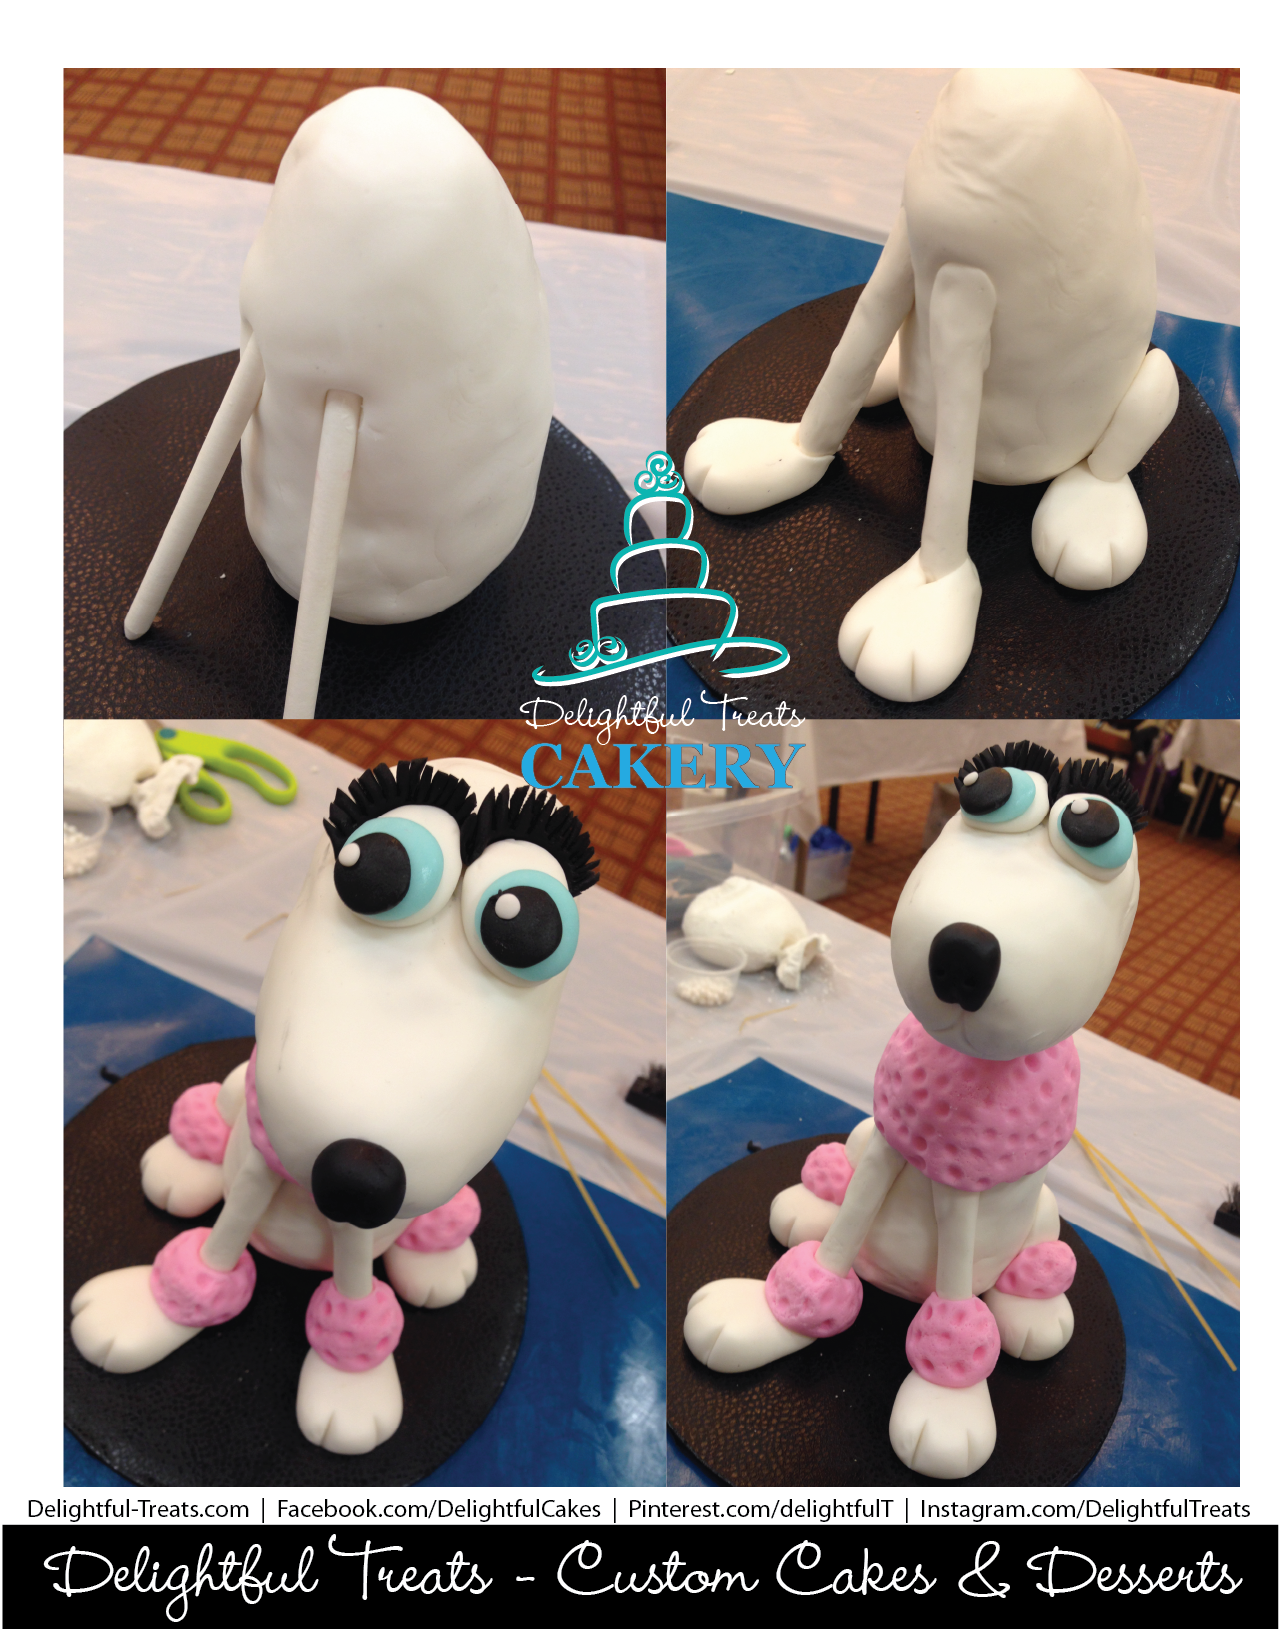 Fifi The French Poodle Sculpted Dog From Rice Krispies And Fondant By Delightful Treats Cakery